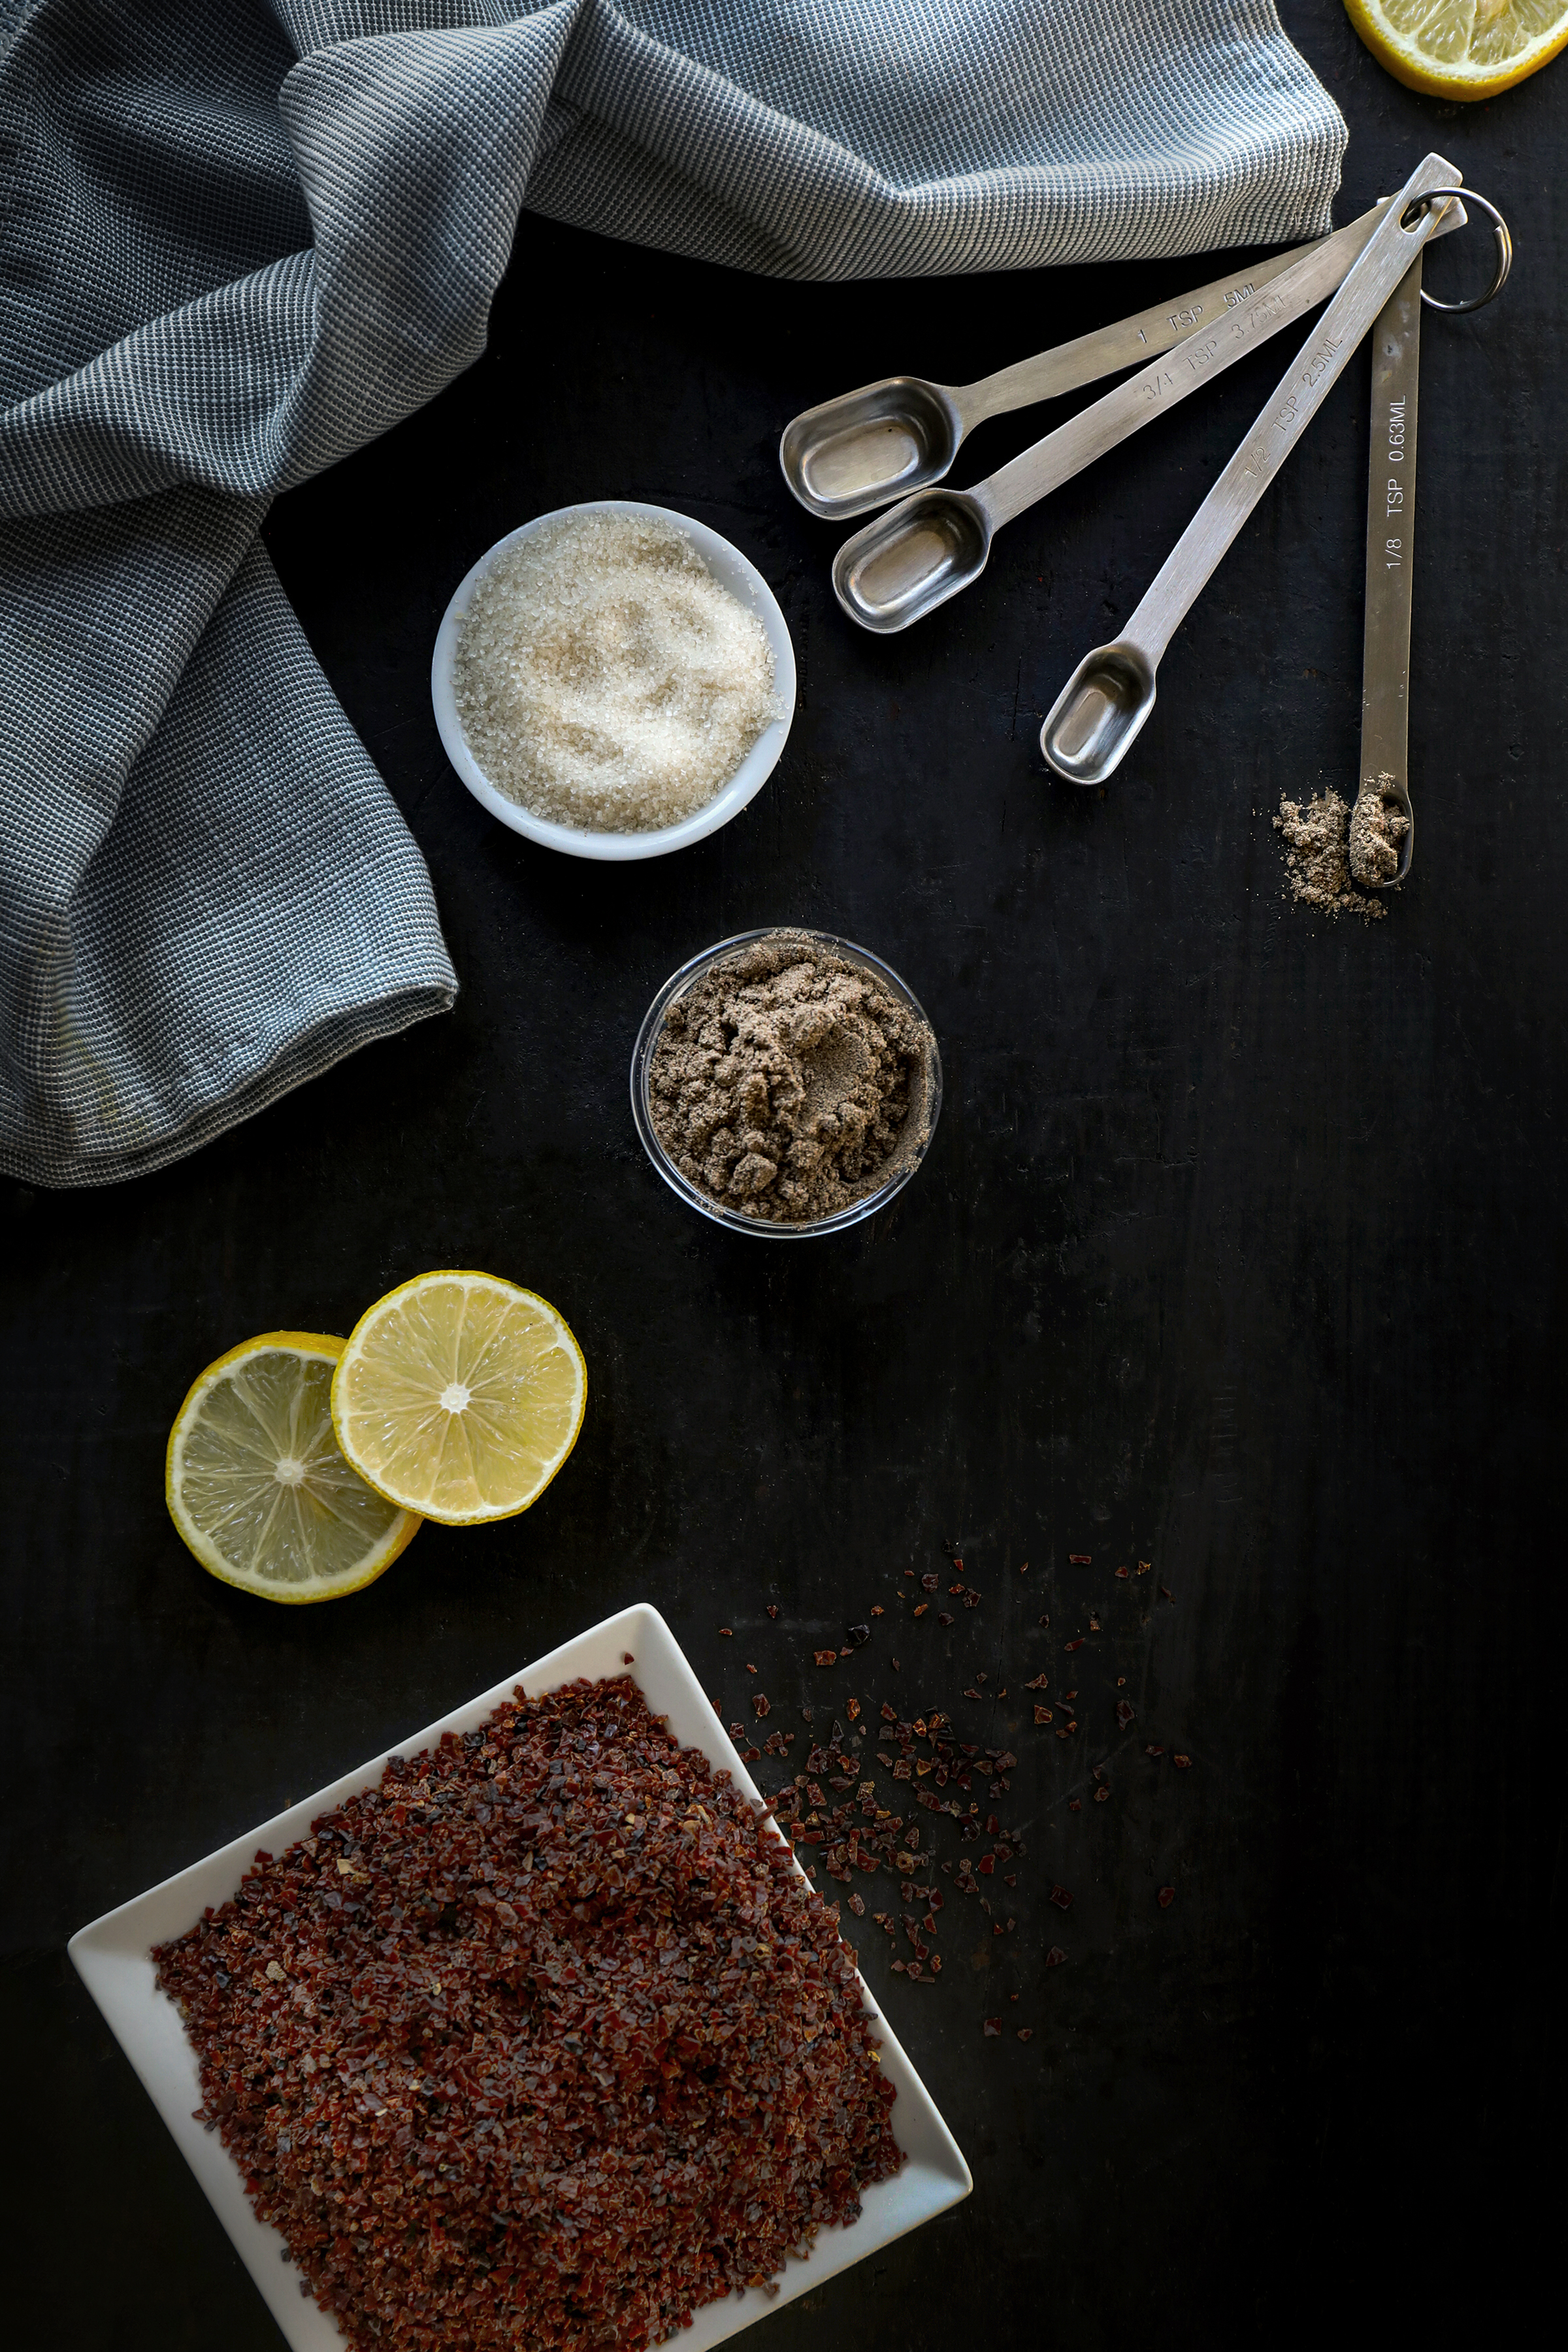 Ingredients for a freezer jam made with dried organic rosehips, fresh lemon, organic cardamom powder, and cane sugar.